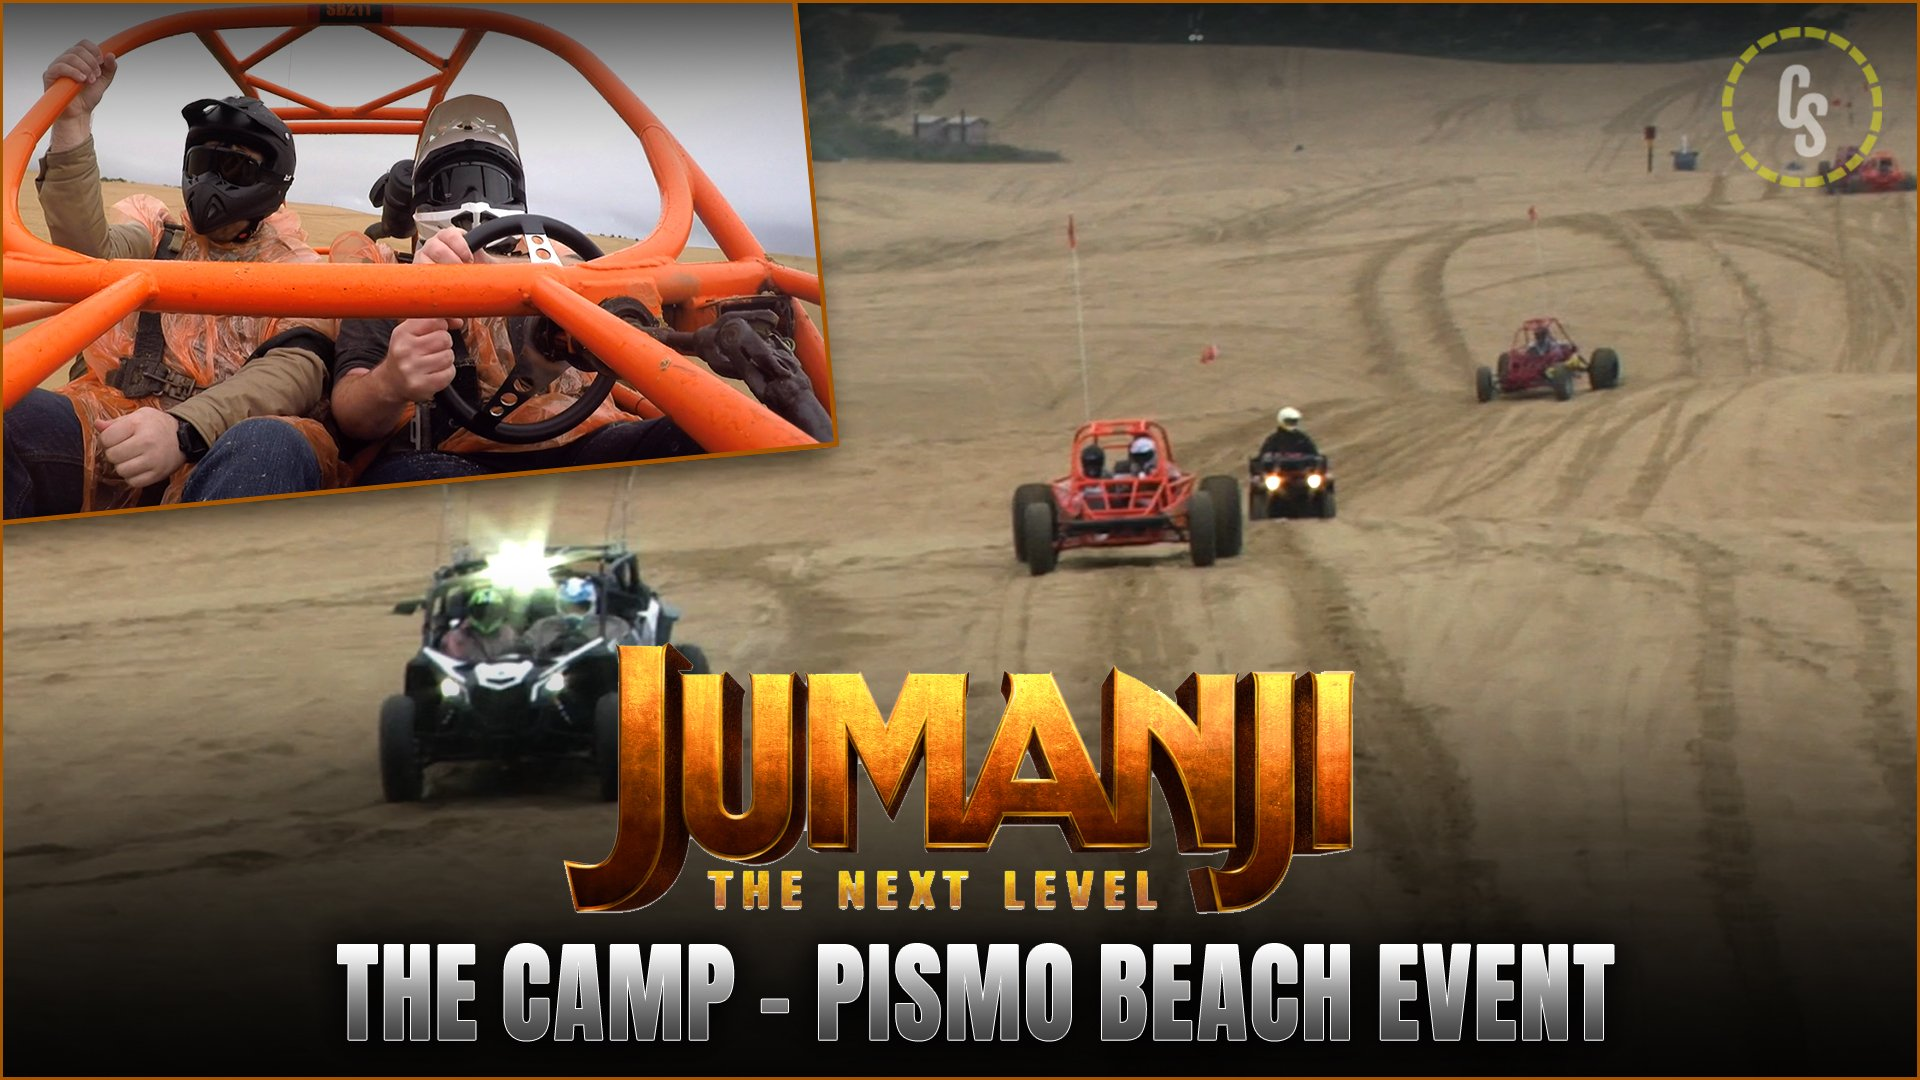 CS Video: Riding Dune Buggies on Pismo Beach for Jumanji: The Next Level